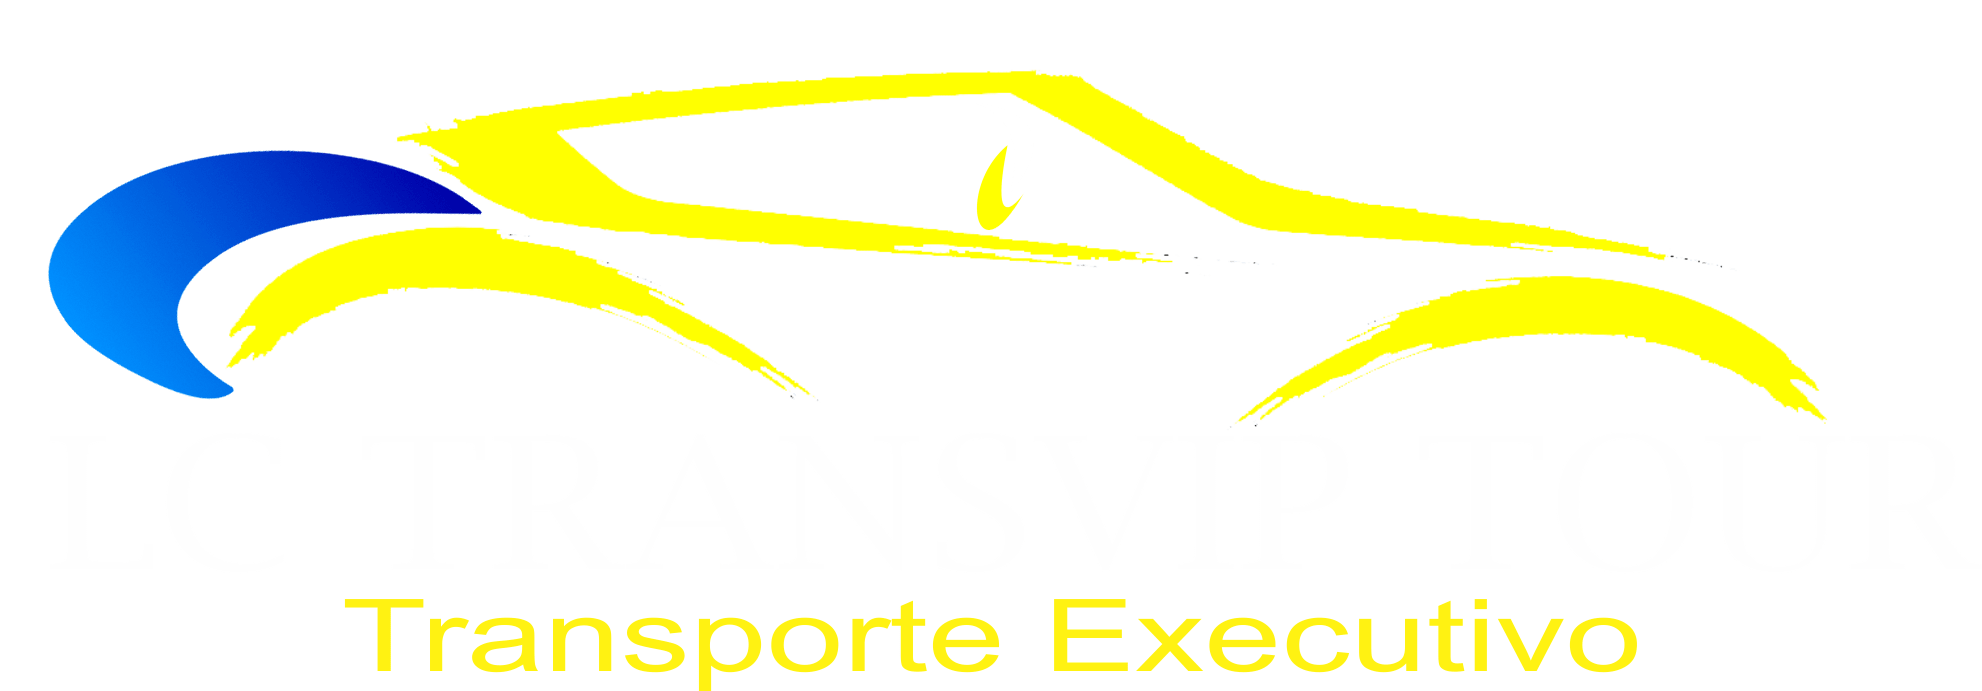 Transfer Executivo na Barra Funda,Empresa de Transfer Executivo na Barra Funda,Transfer Executivo na Barra Funda Urgente,Transfer Executivo na Barra Funda em São Paulo,Transfer Executivo na Barra Funda SP,Orçamento de Transfer Executivo na Barra Funda,LC Transvip Tour